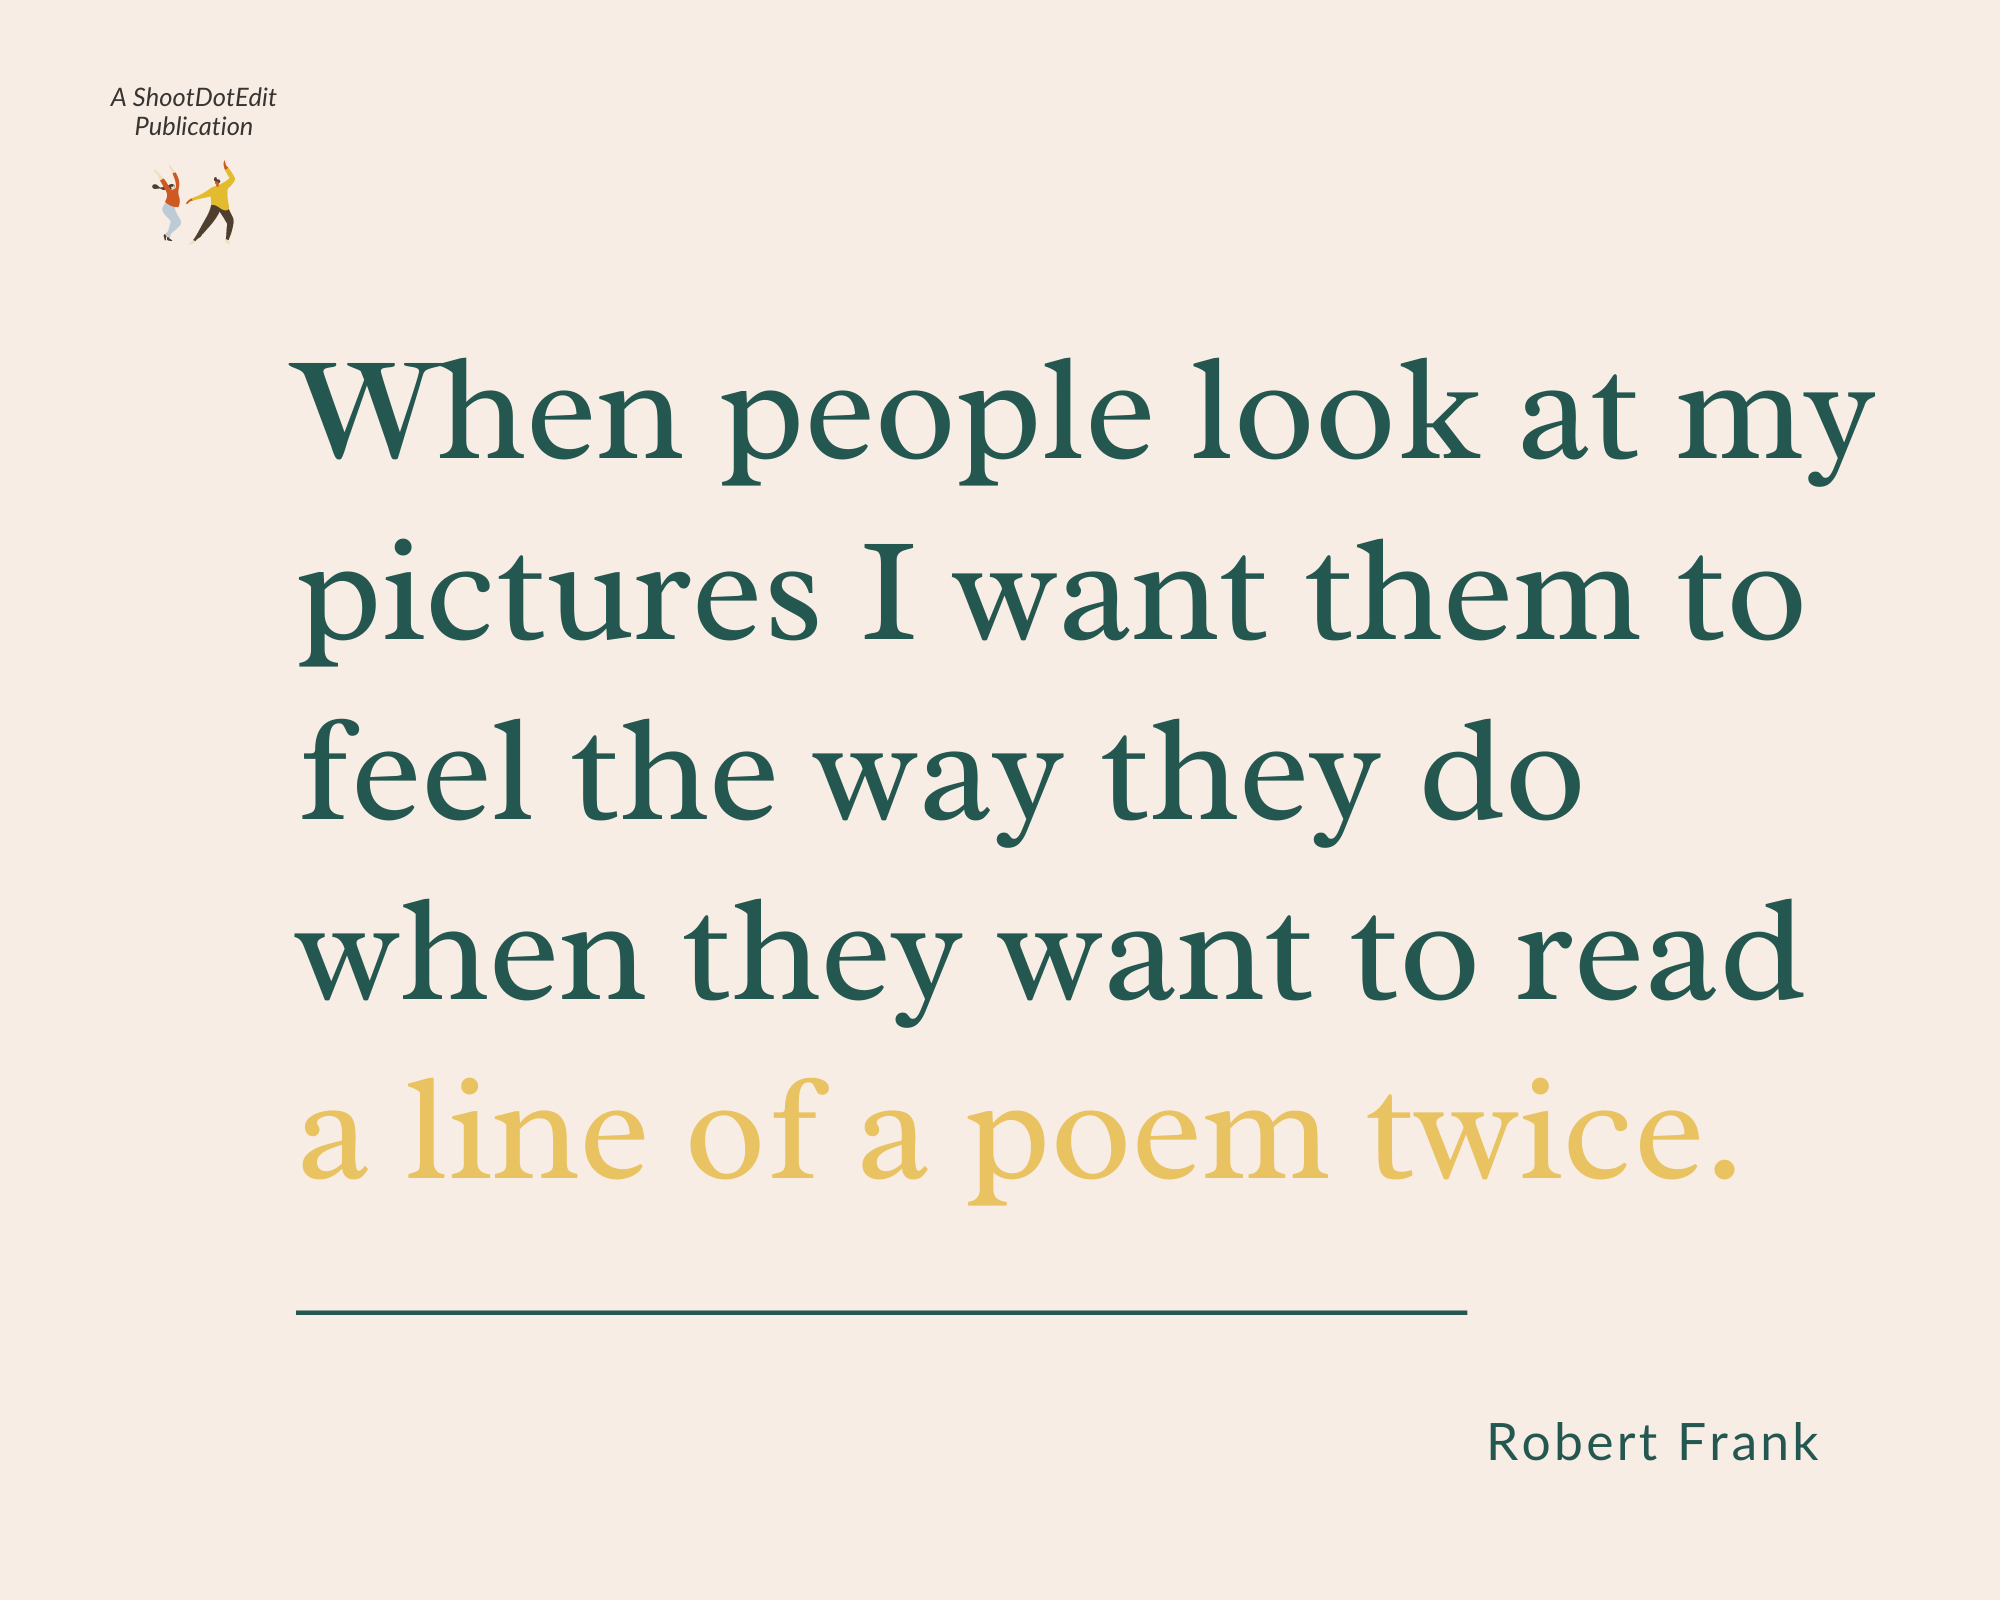 Infographic stating when people look at my pictures I want them to feel the way they do when they want to read a line of a poem twice